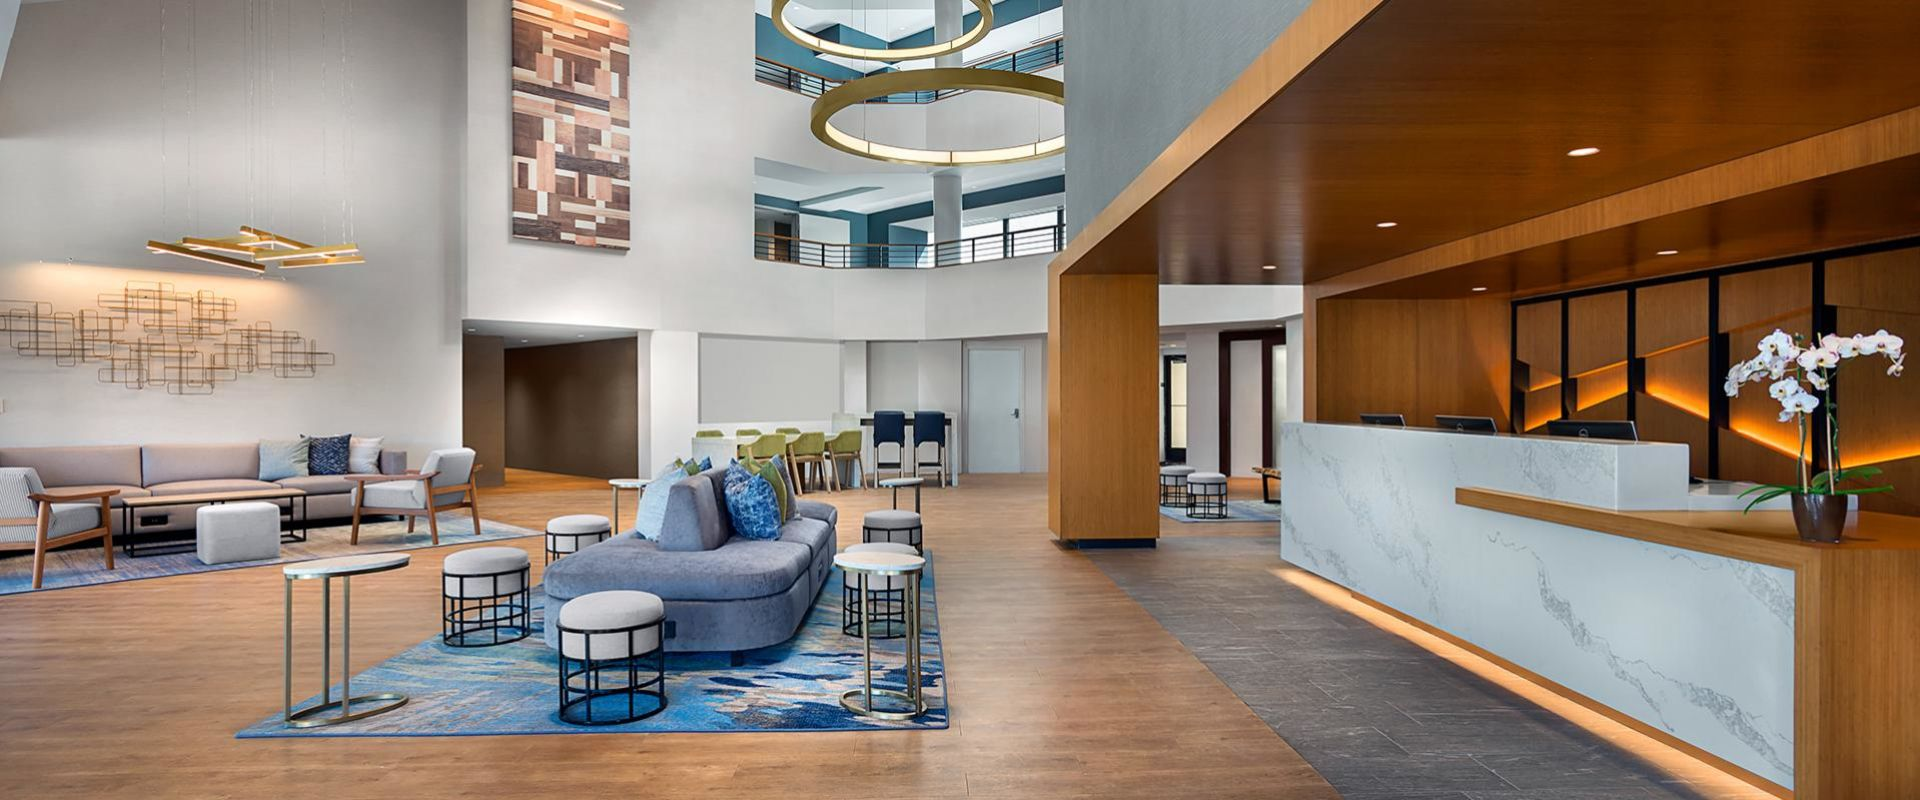 Warm and welcoming communal spaces